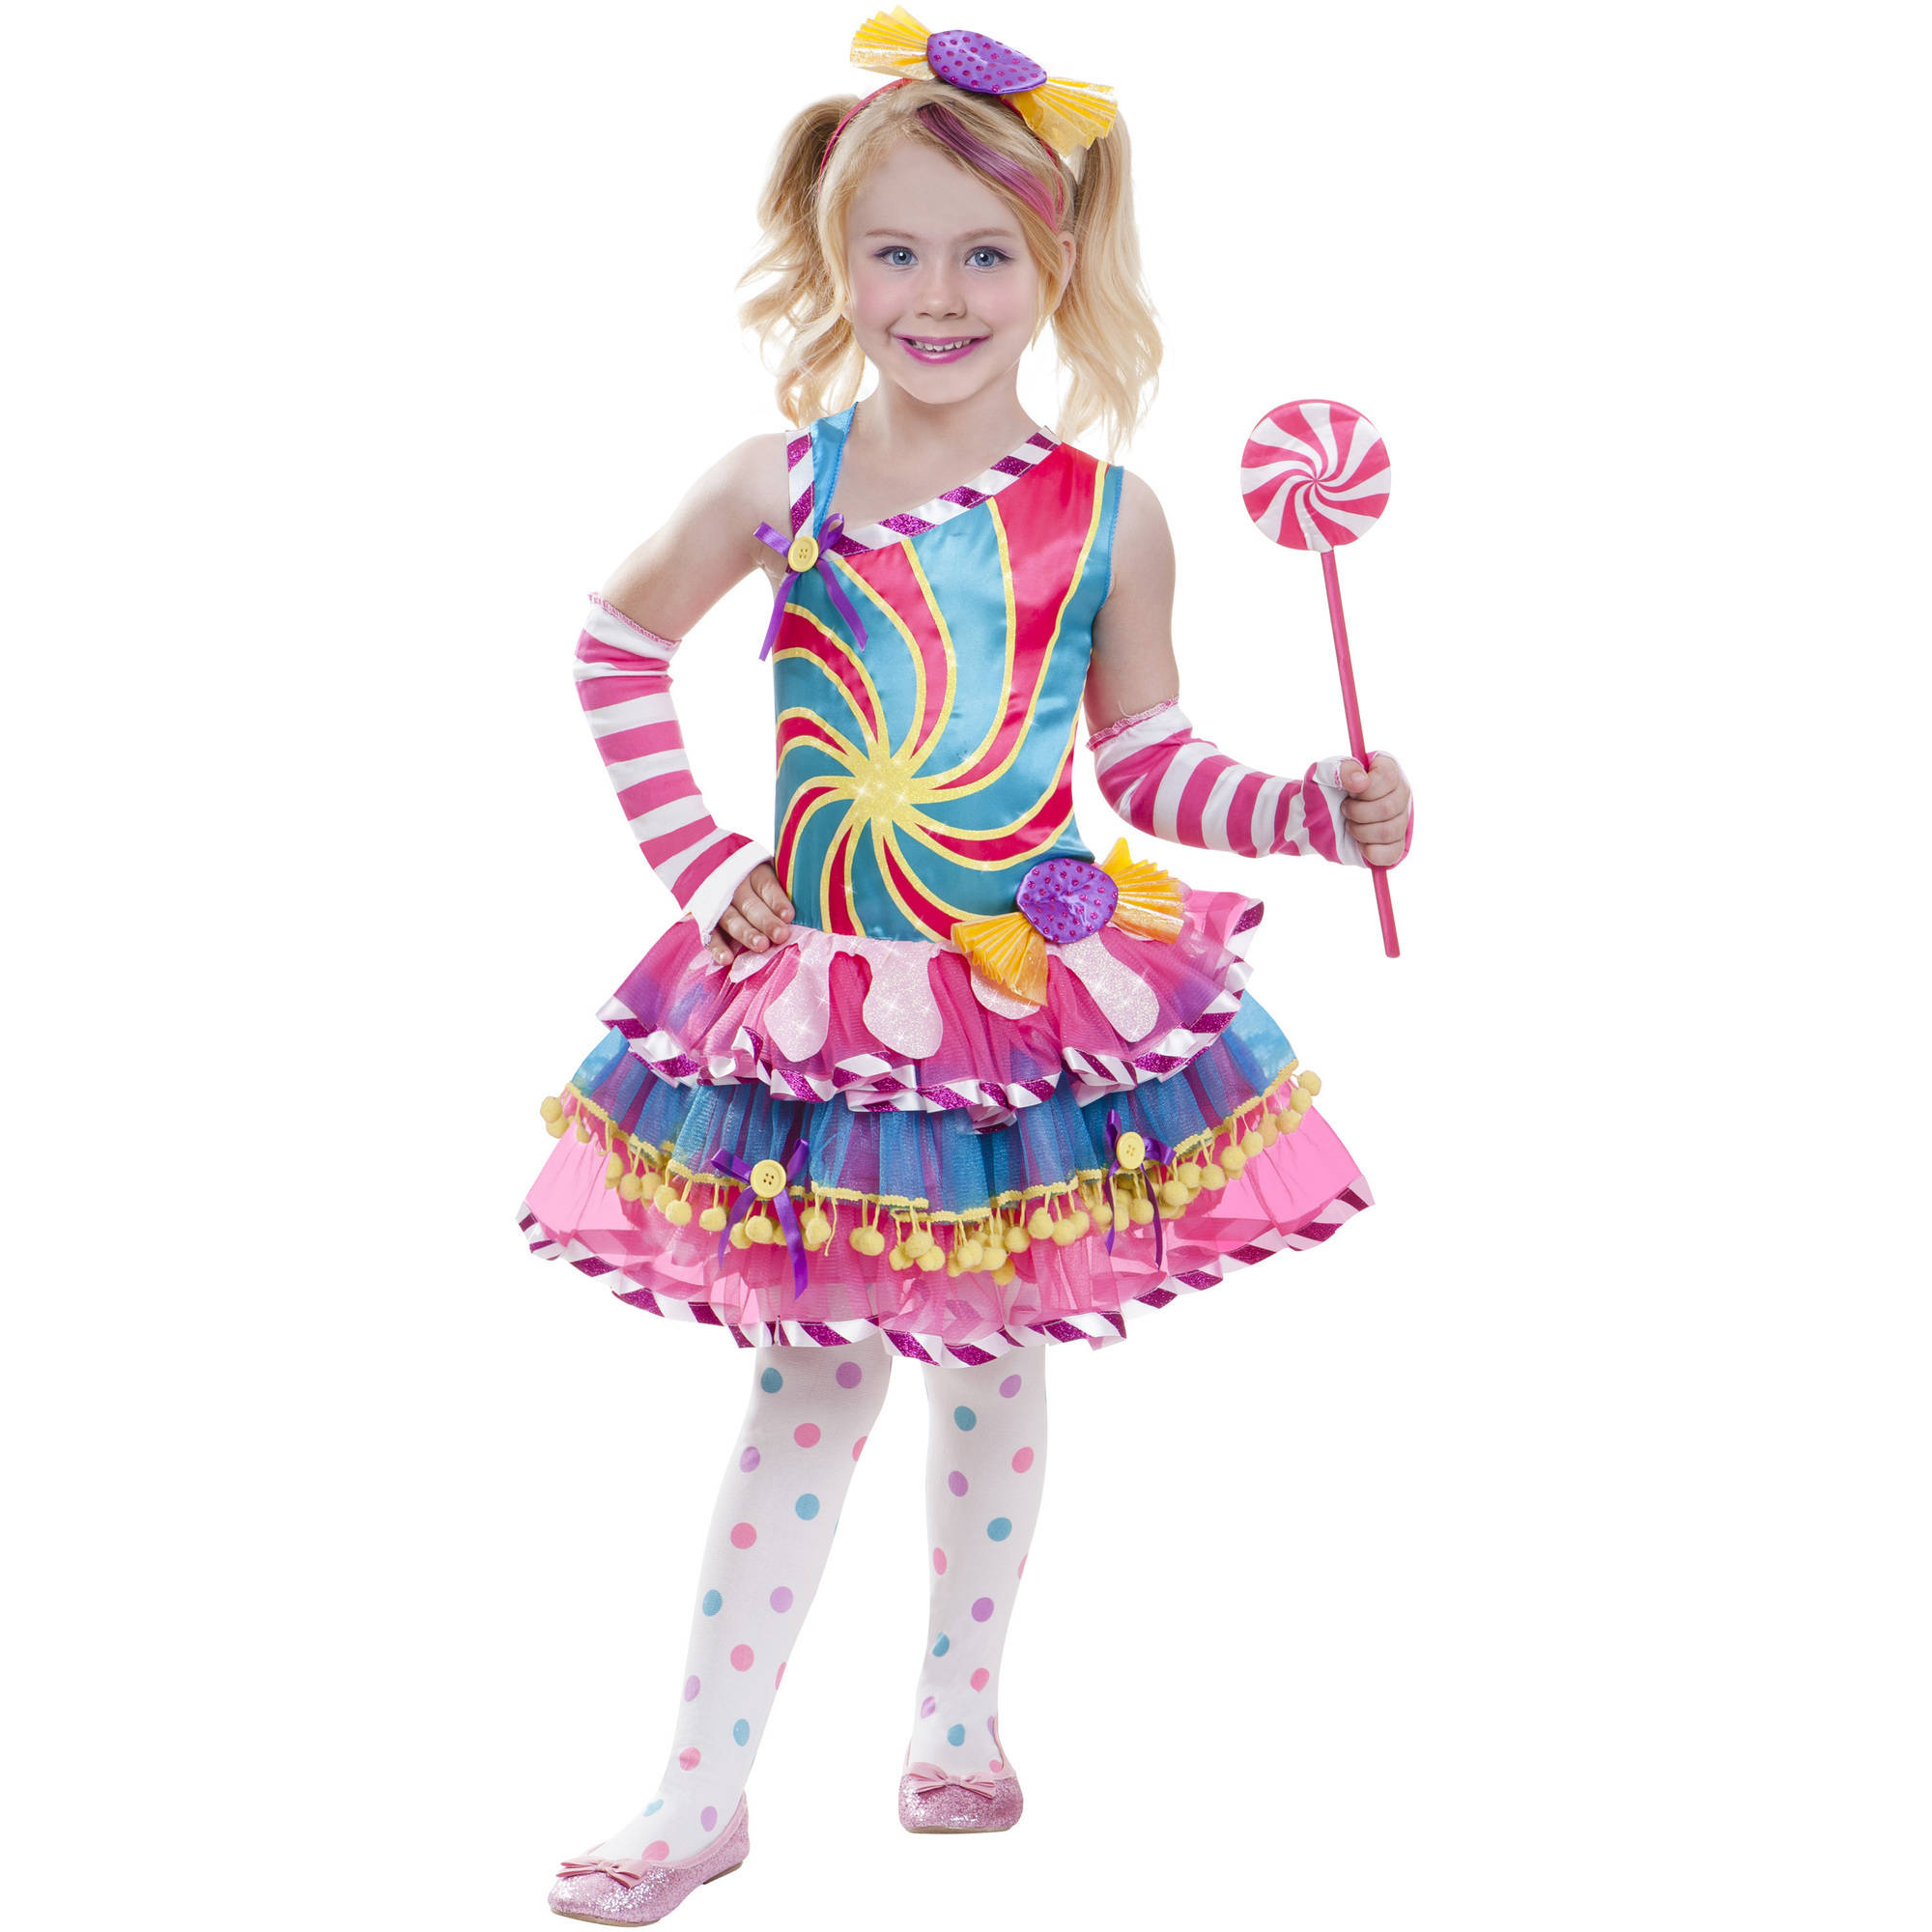 Candy Girl Child Halloween Costume  sc 1 st  Walmart & Candy Girl Child Halloween Costume - Walmart.com